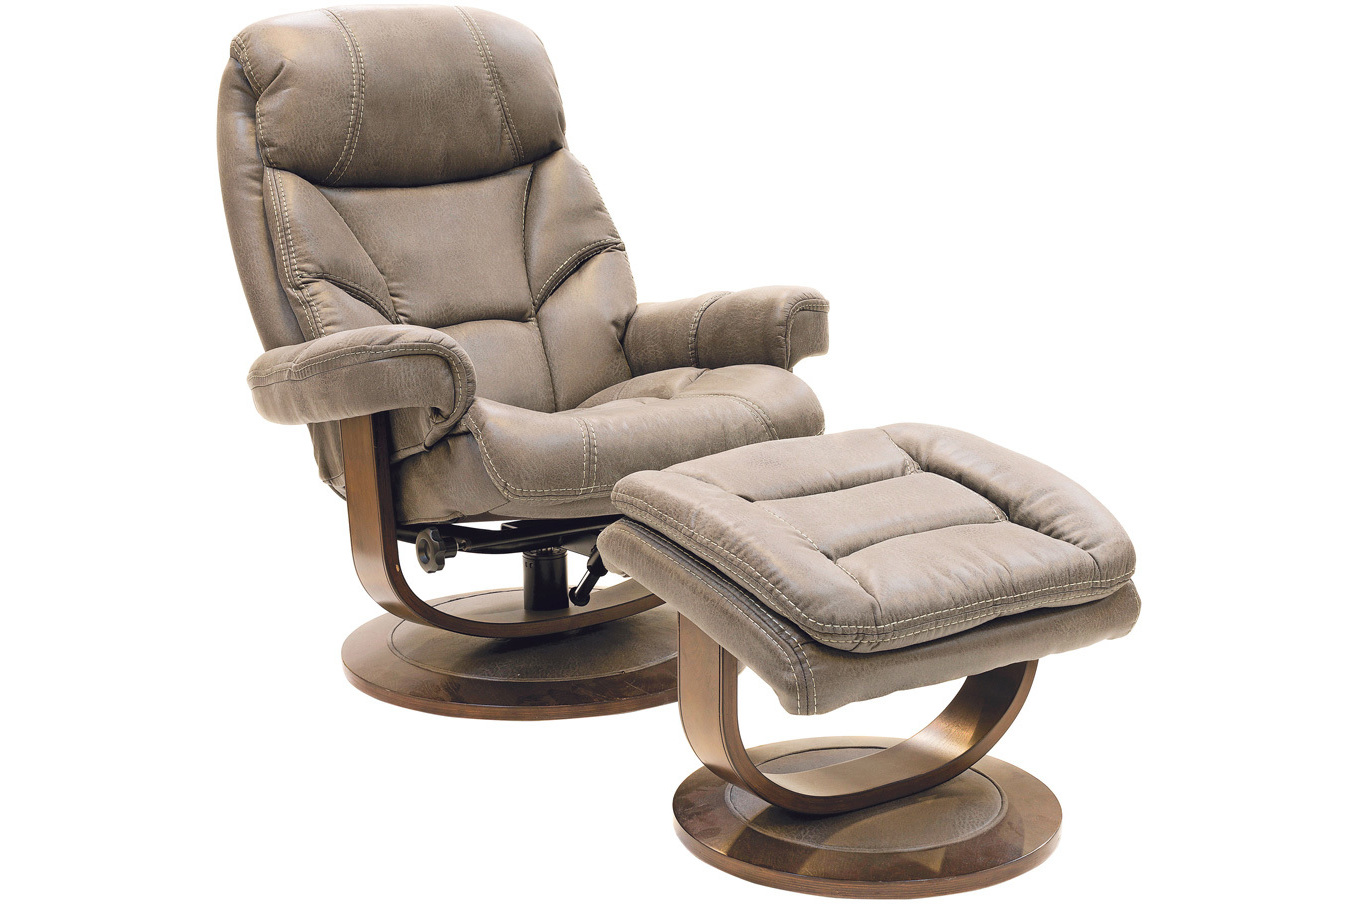 swivel chair ireland black glitter covers harvey norman recliner chairs cayenne